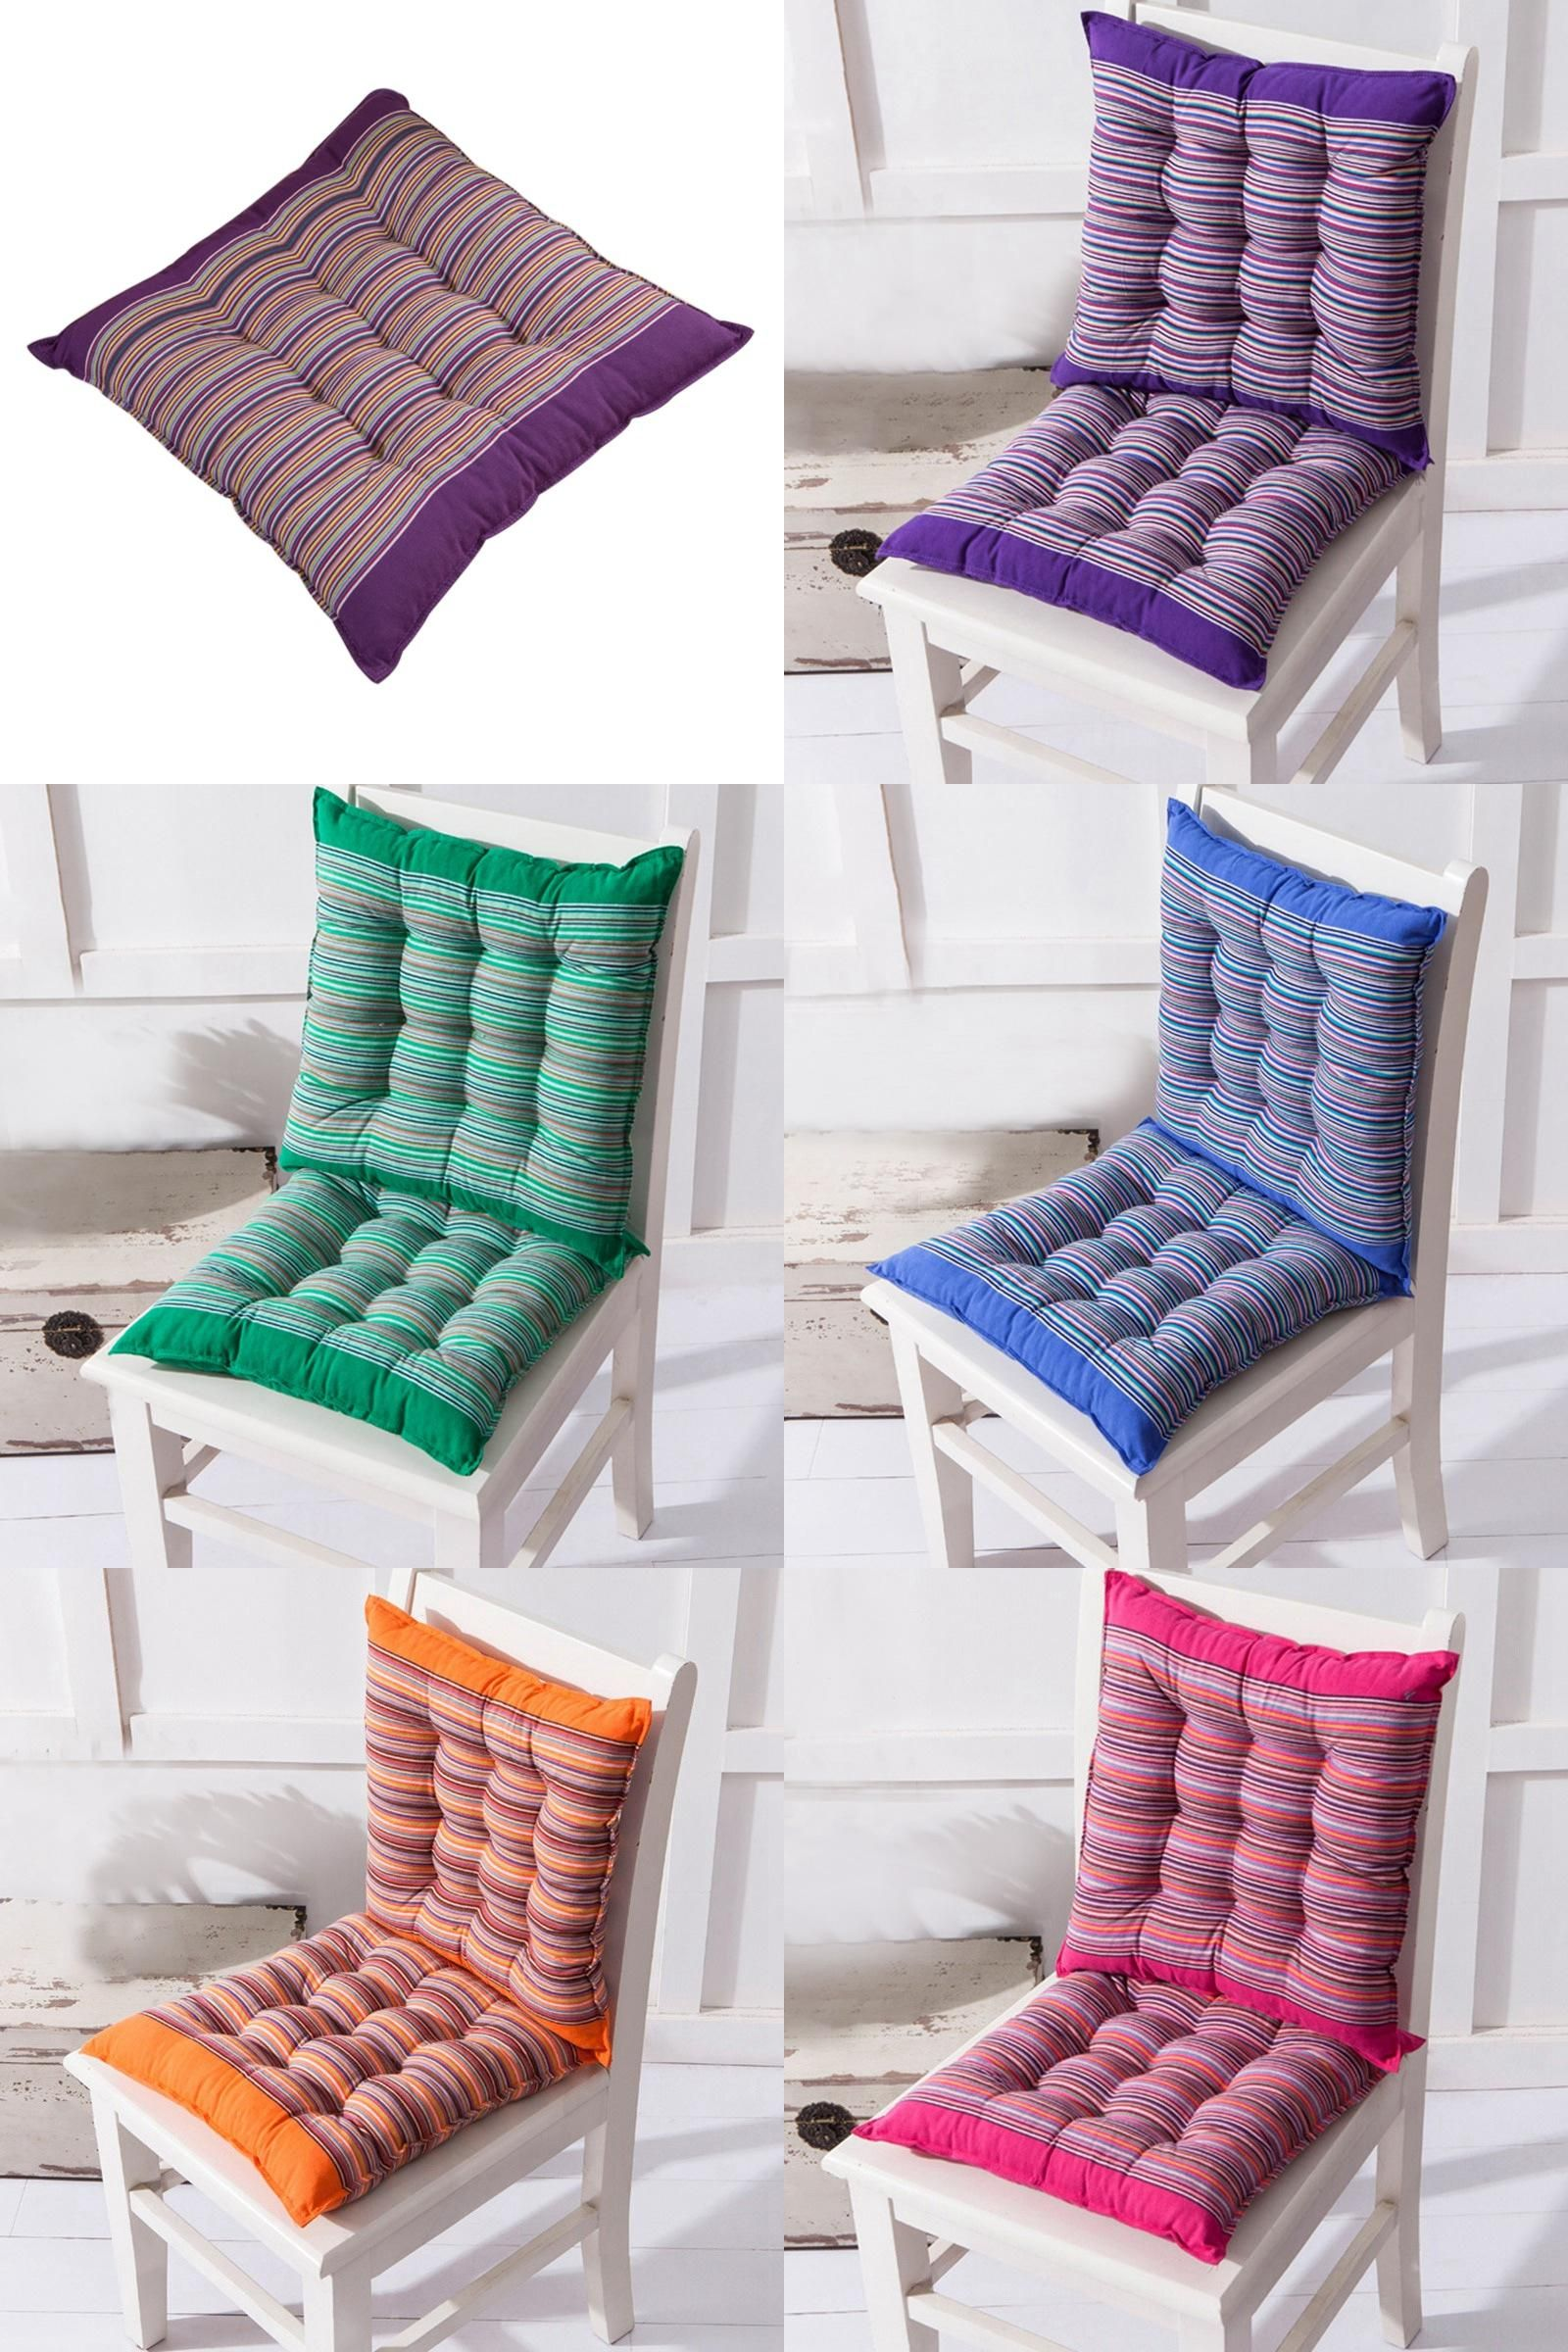 Visit to Buy] Striped Chair Cushion Soft Square Seat Pads Back